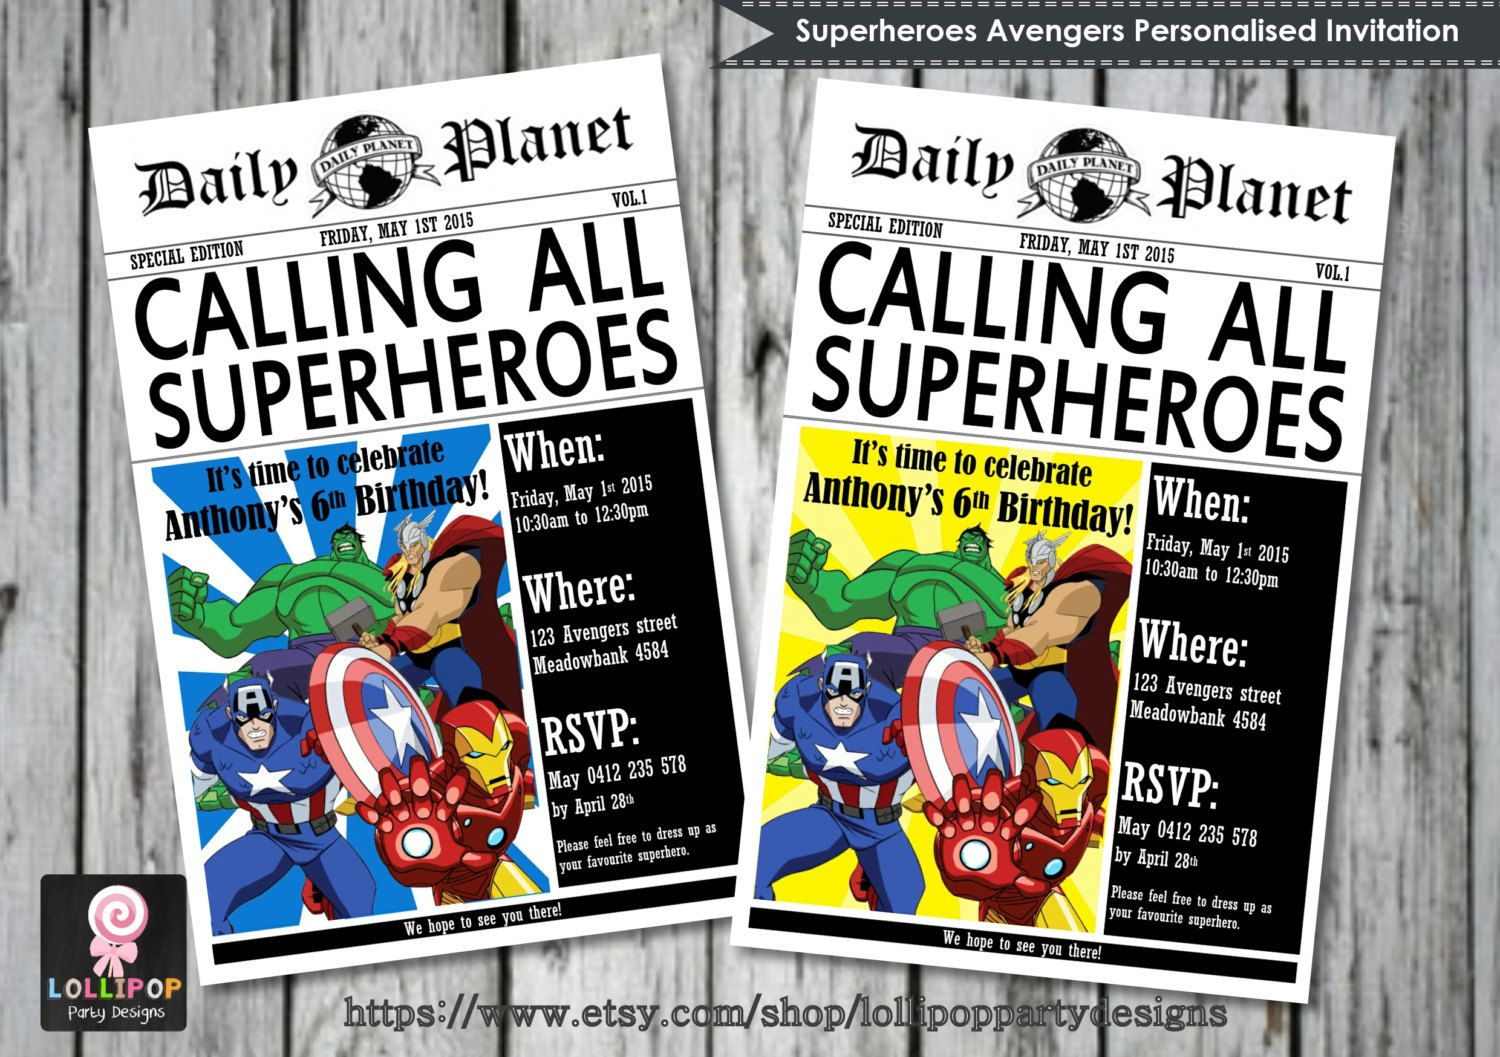 bday party invitation mail%0A Superhero birthday party invitations I made using Word  I downloaded free  newspaper fonts and found the images on Google  After folding them  I tie u